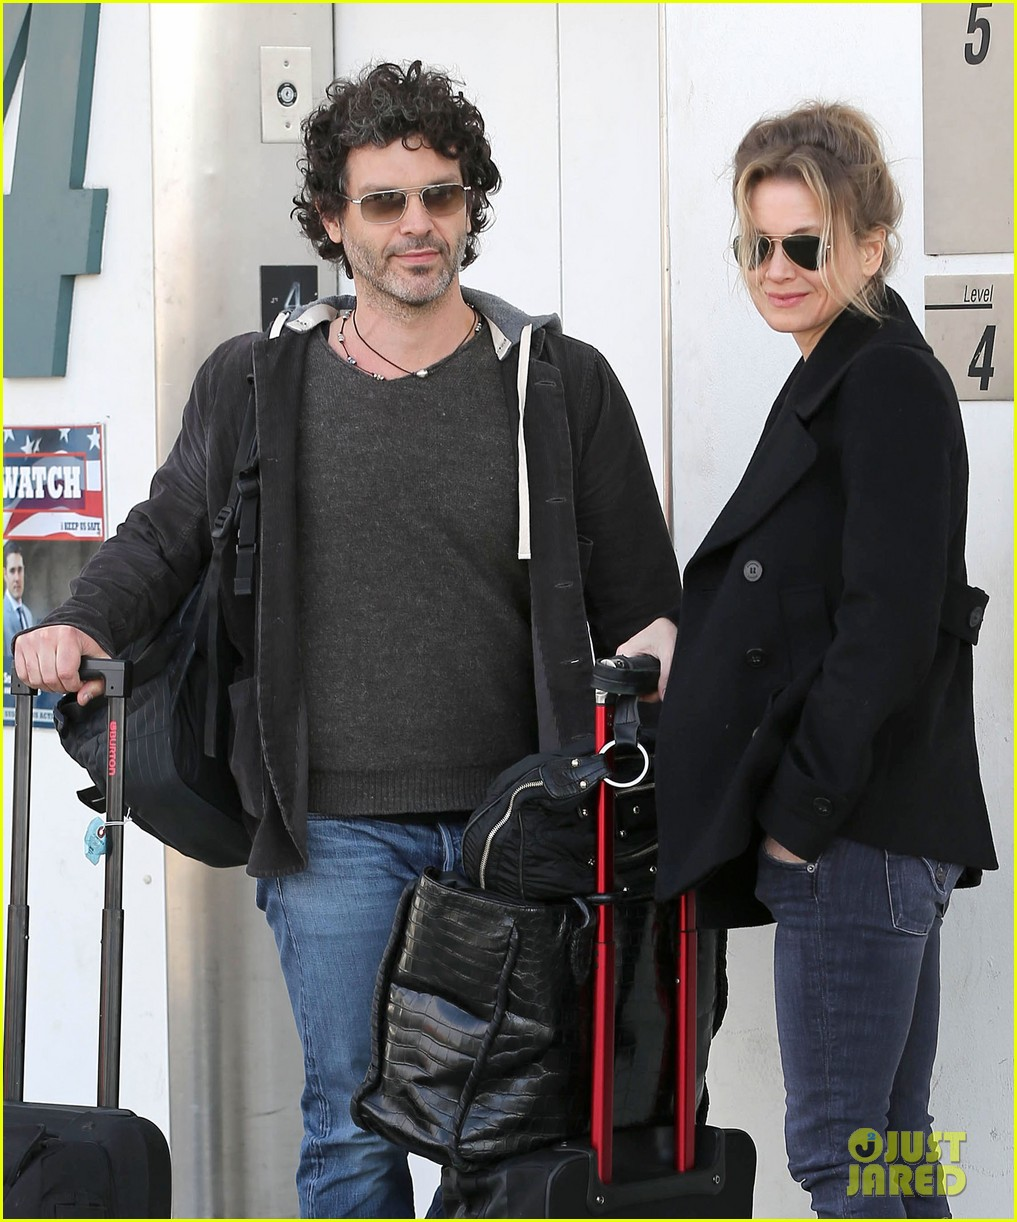 renee zellweger departs lax after chicago cast oscar news 022810580